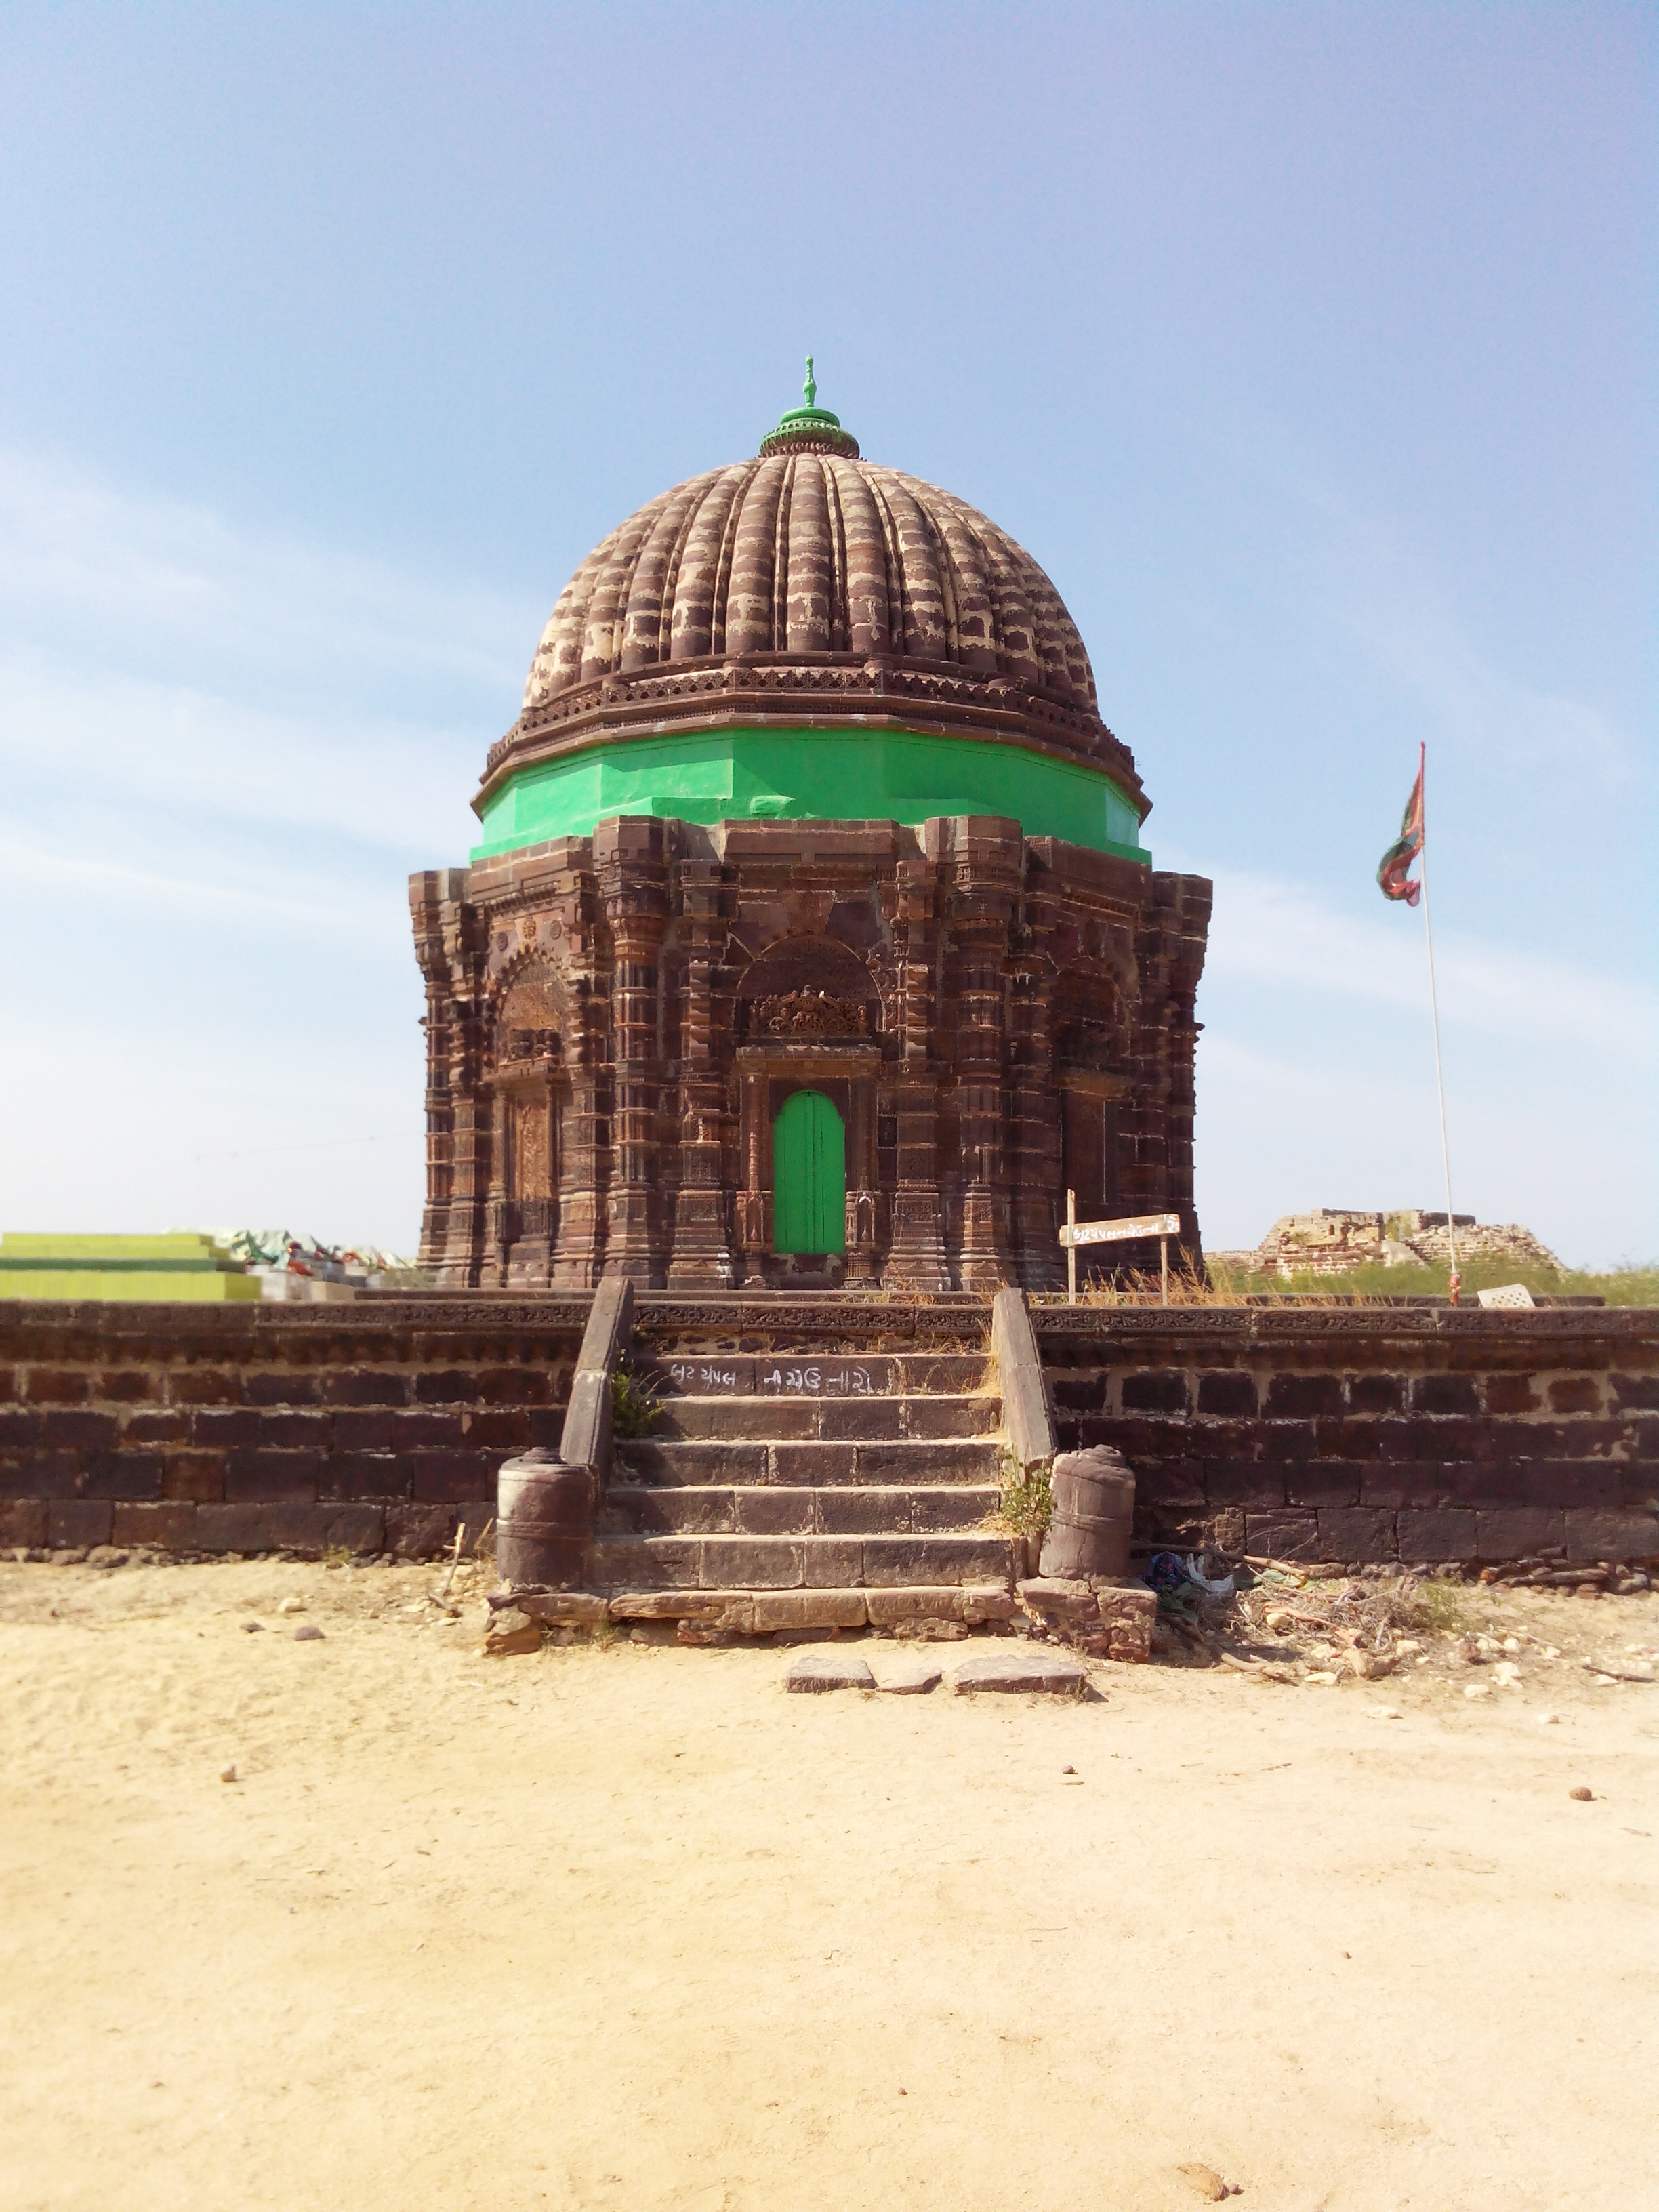 Pir Mohammed Kubo tomb at Lakhpat, Kutch, Gujarat, India